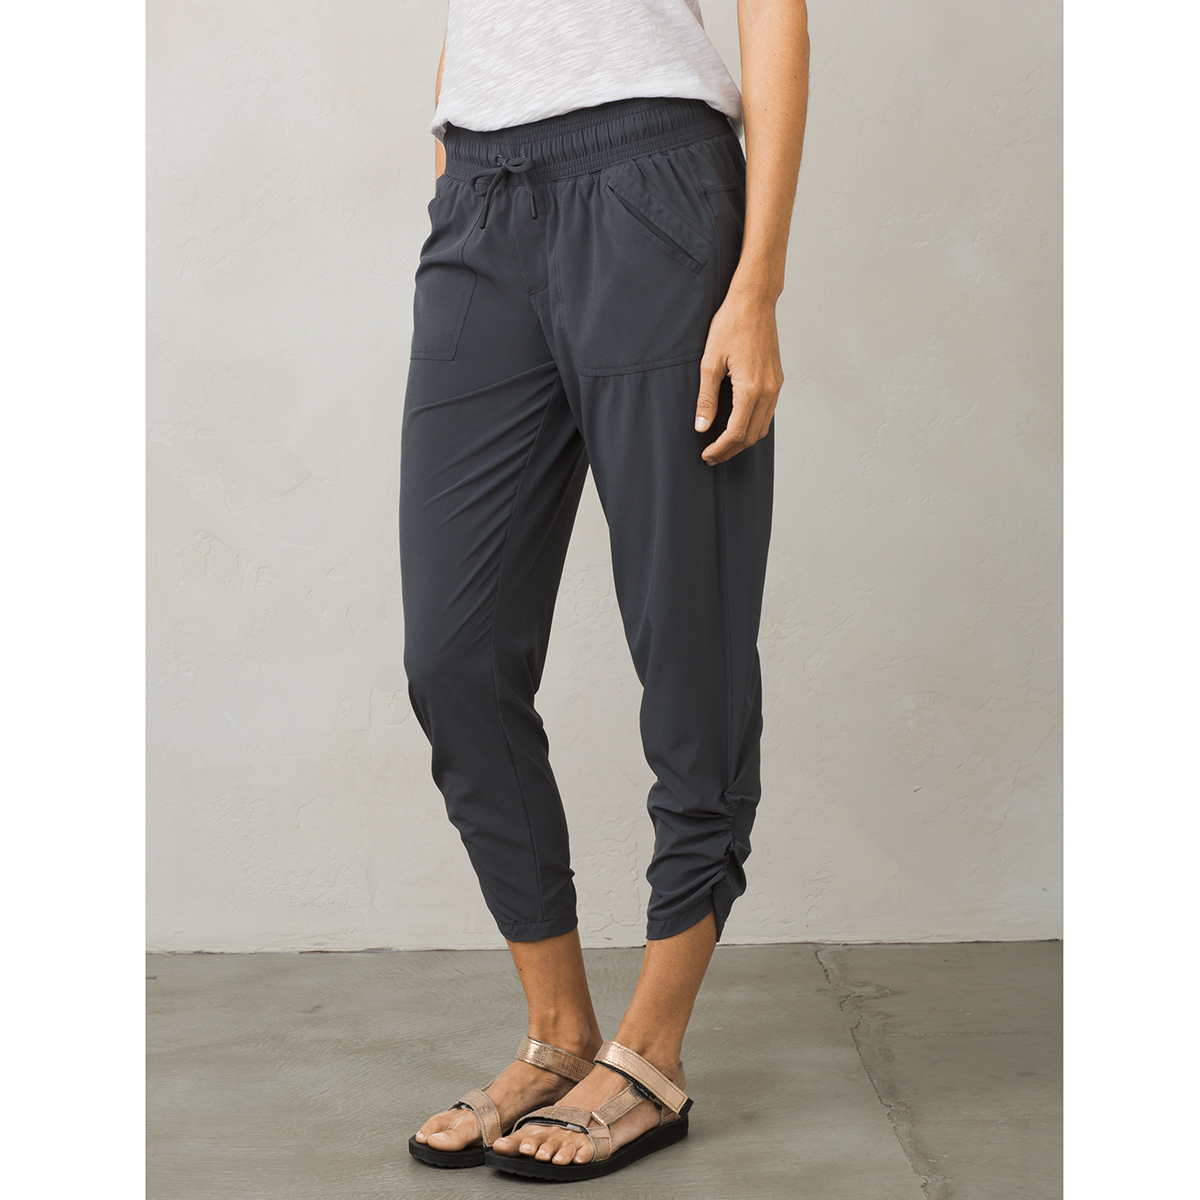 Capri pants women – Reliable companion – even at cooler temperatures